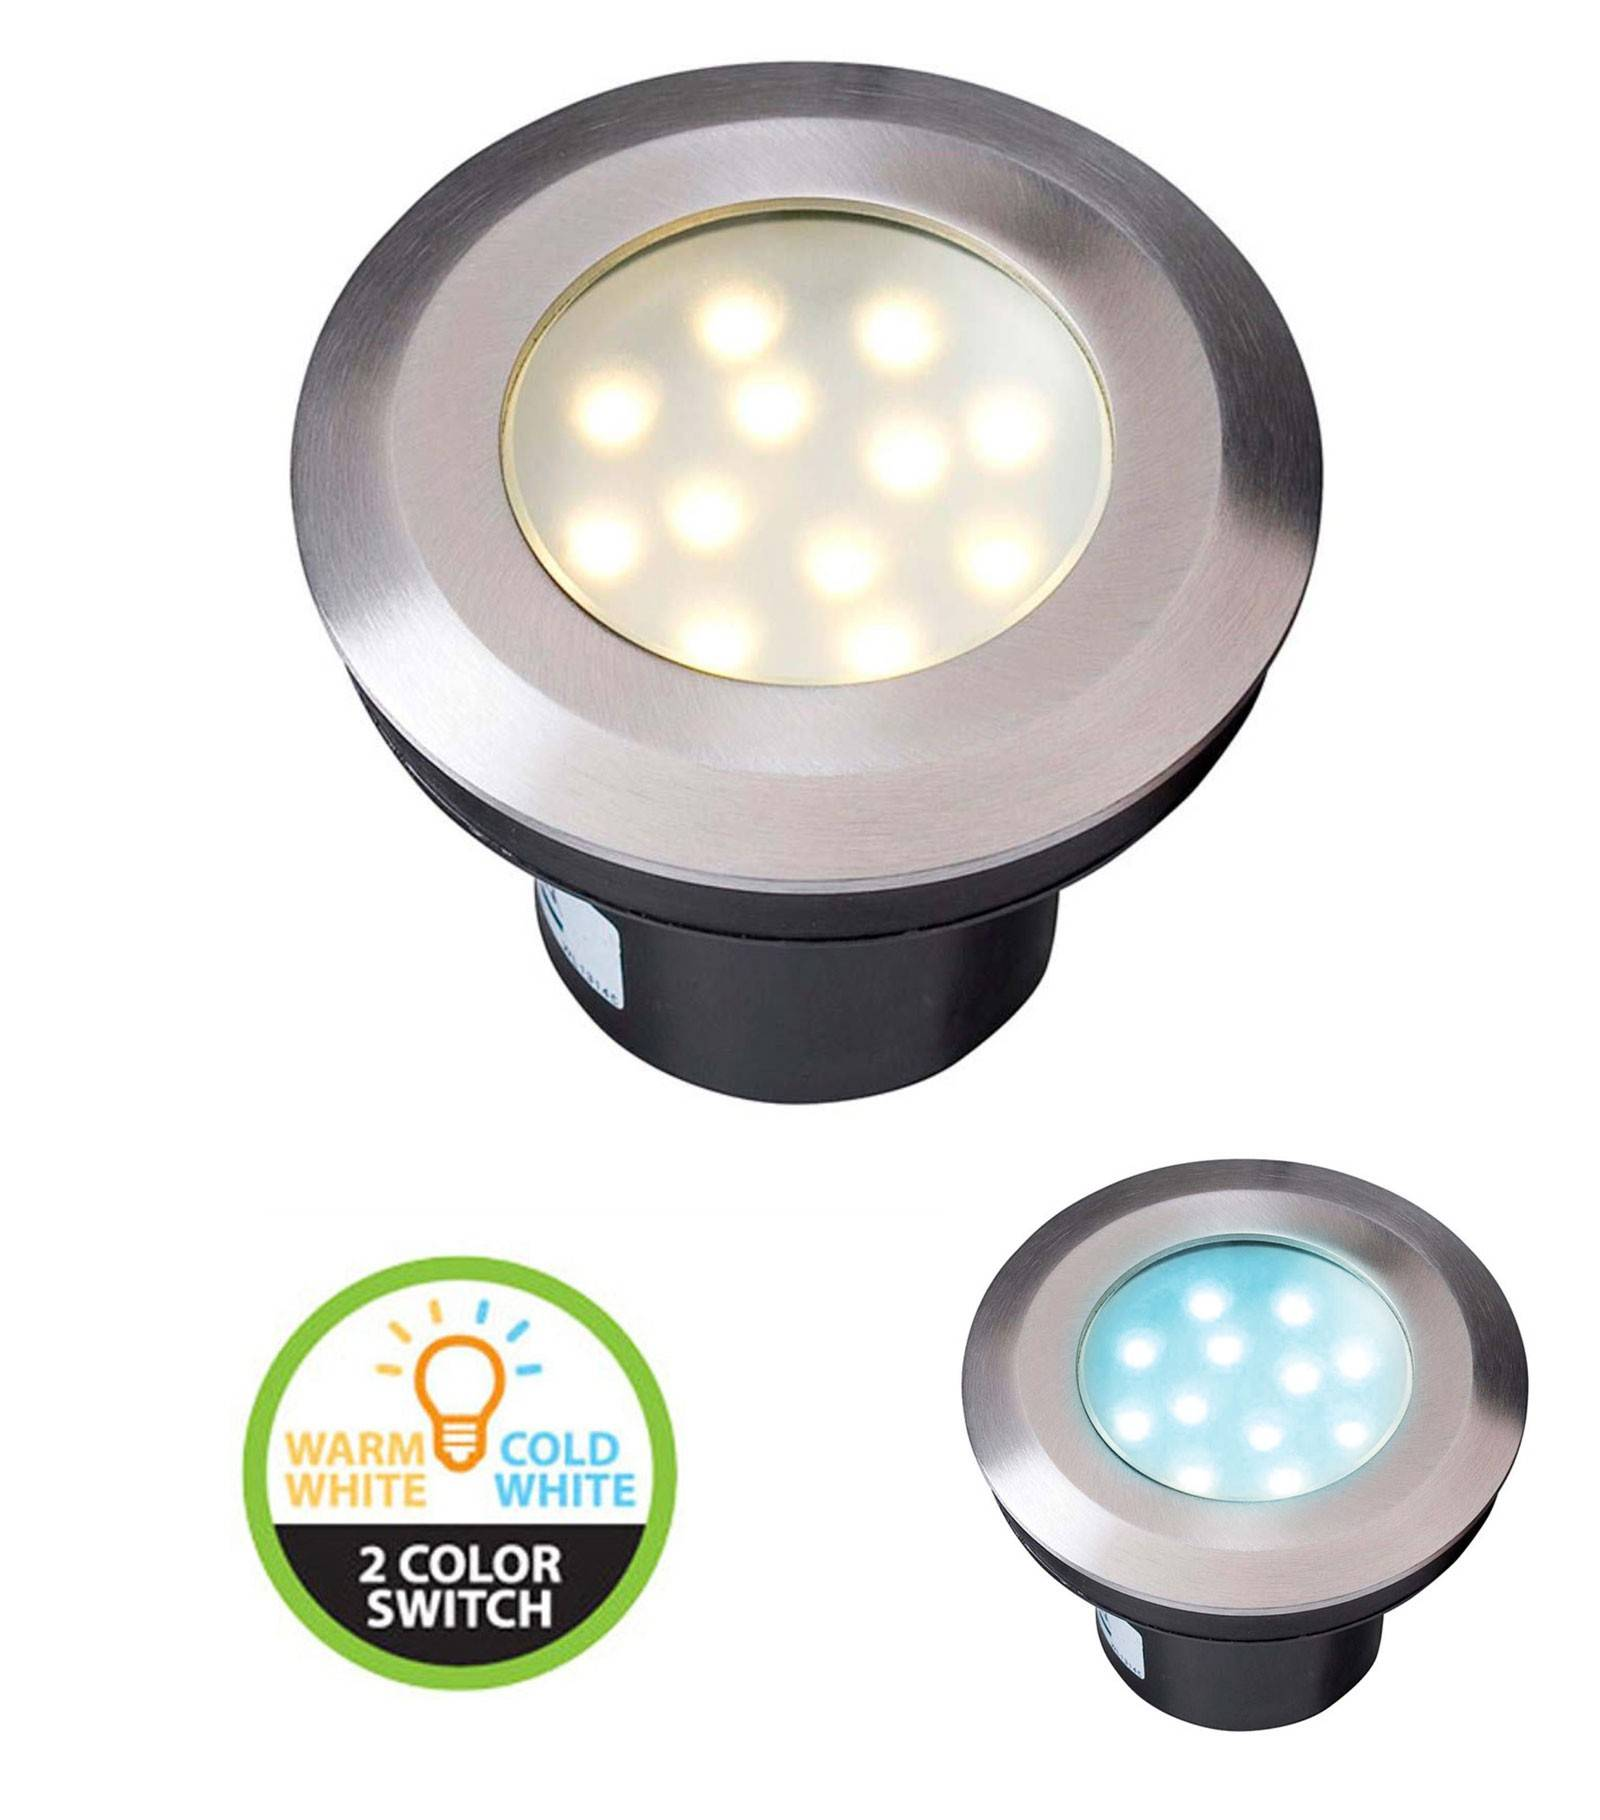 Garden Lights Spot encastrable GAVIA 2W PLATINE LED IP67 Blanc Chaud & blanc froid 3000-6000K Garden lights ampoule fournie - GL4134601